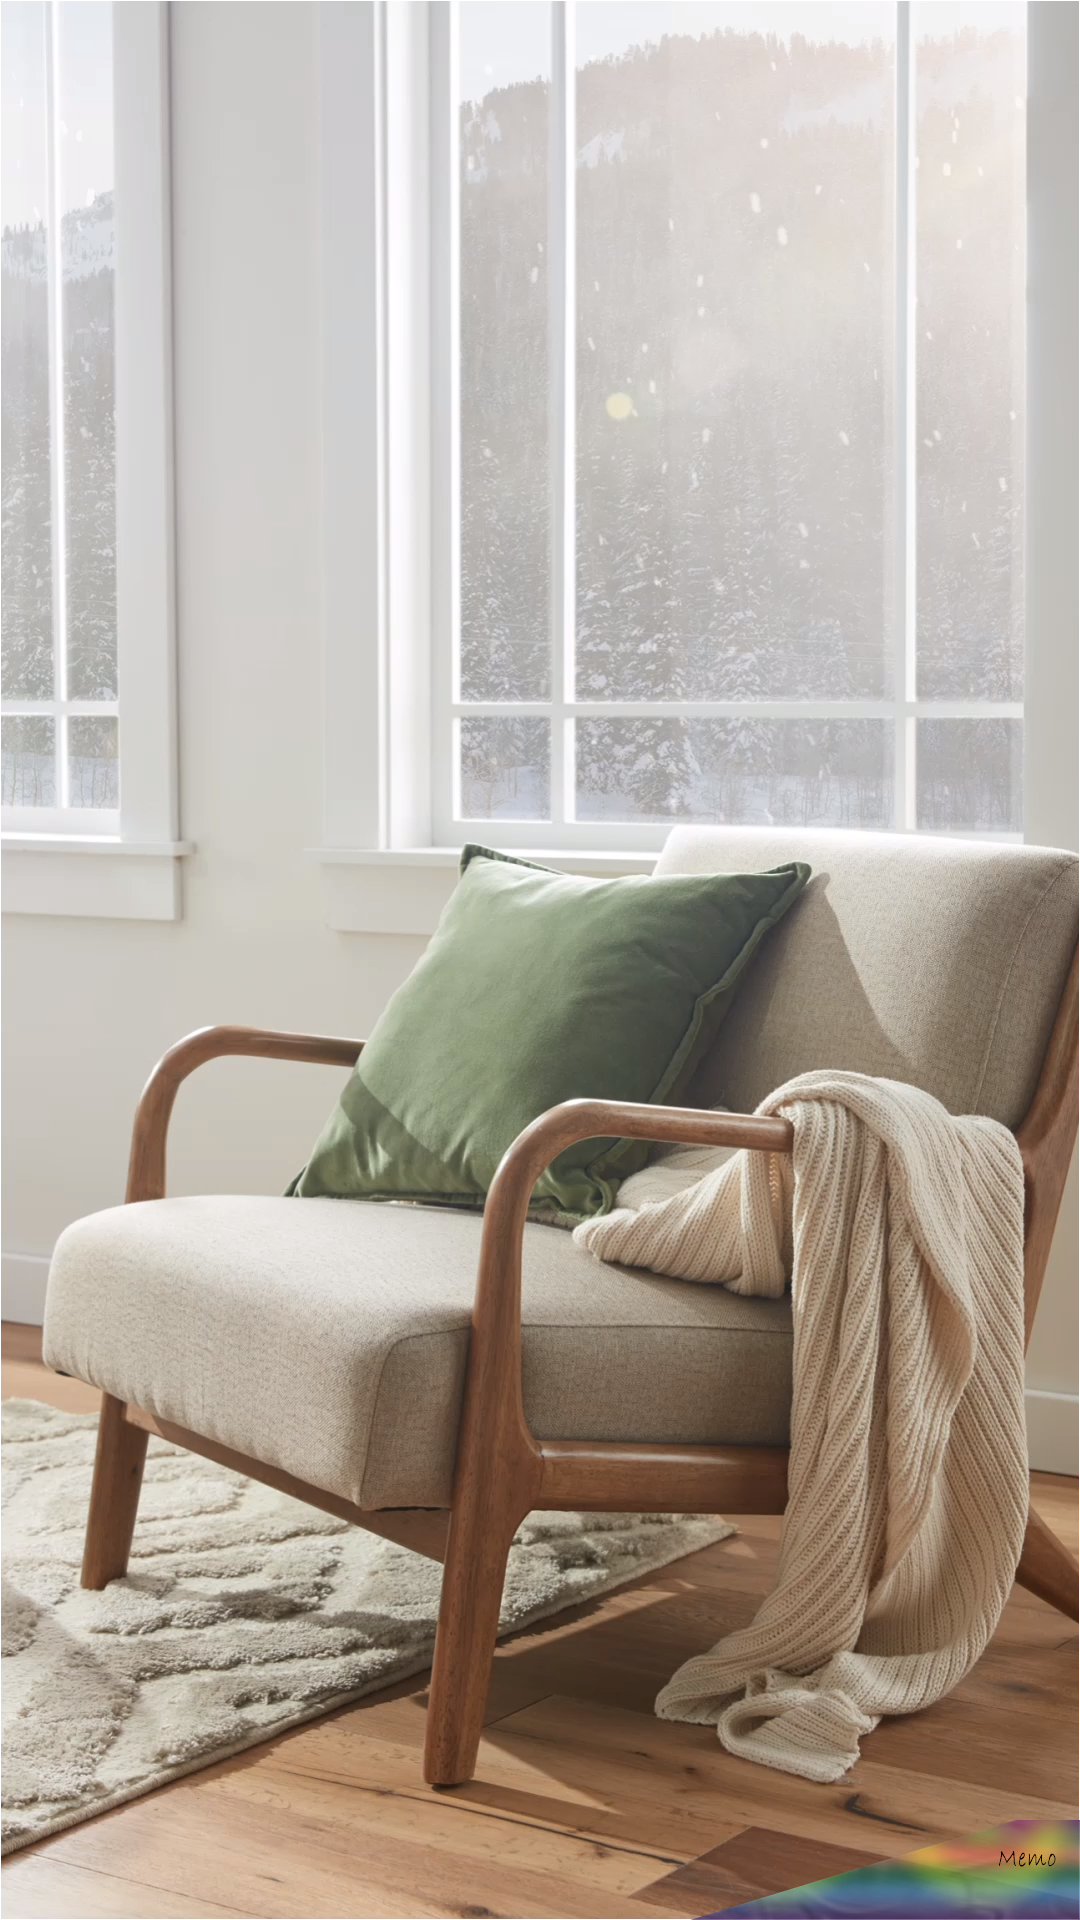 Dec 8 2019 Shop Stylish Accent Chairs At Overstock And Find A Cozy And Festive Seat To Complement Your Holid En 2020 Chaises Salon Chaises Contrastantes Deco Maison